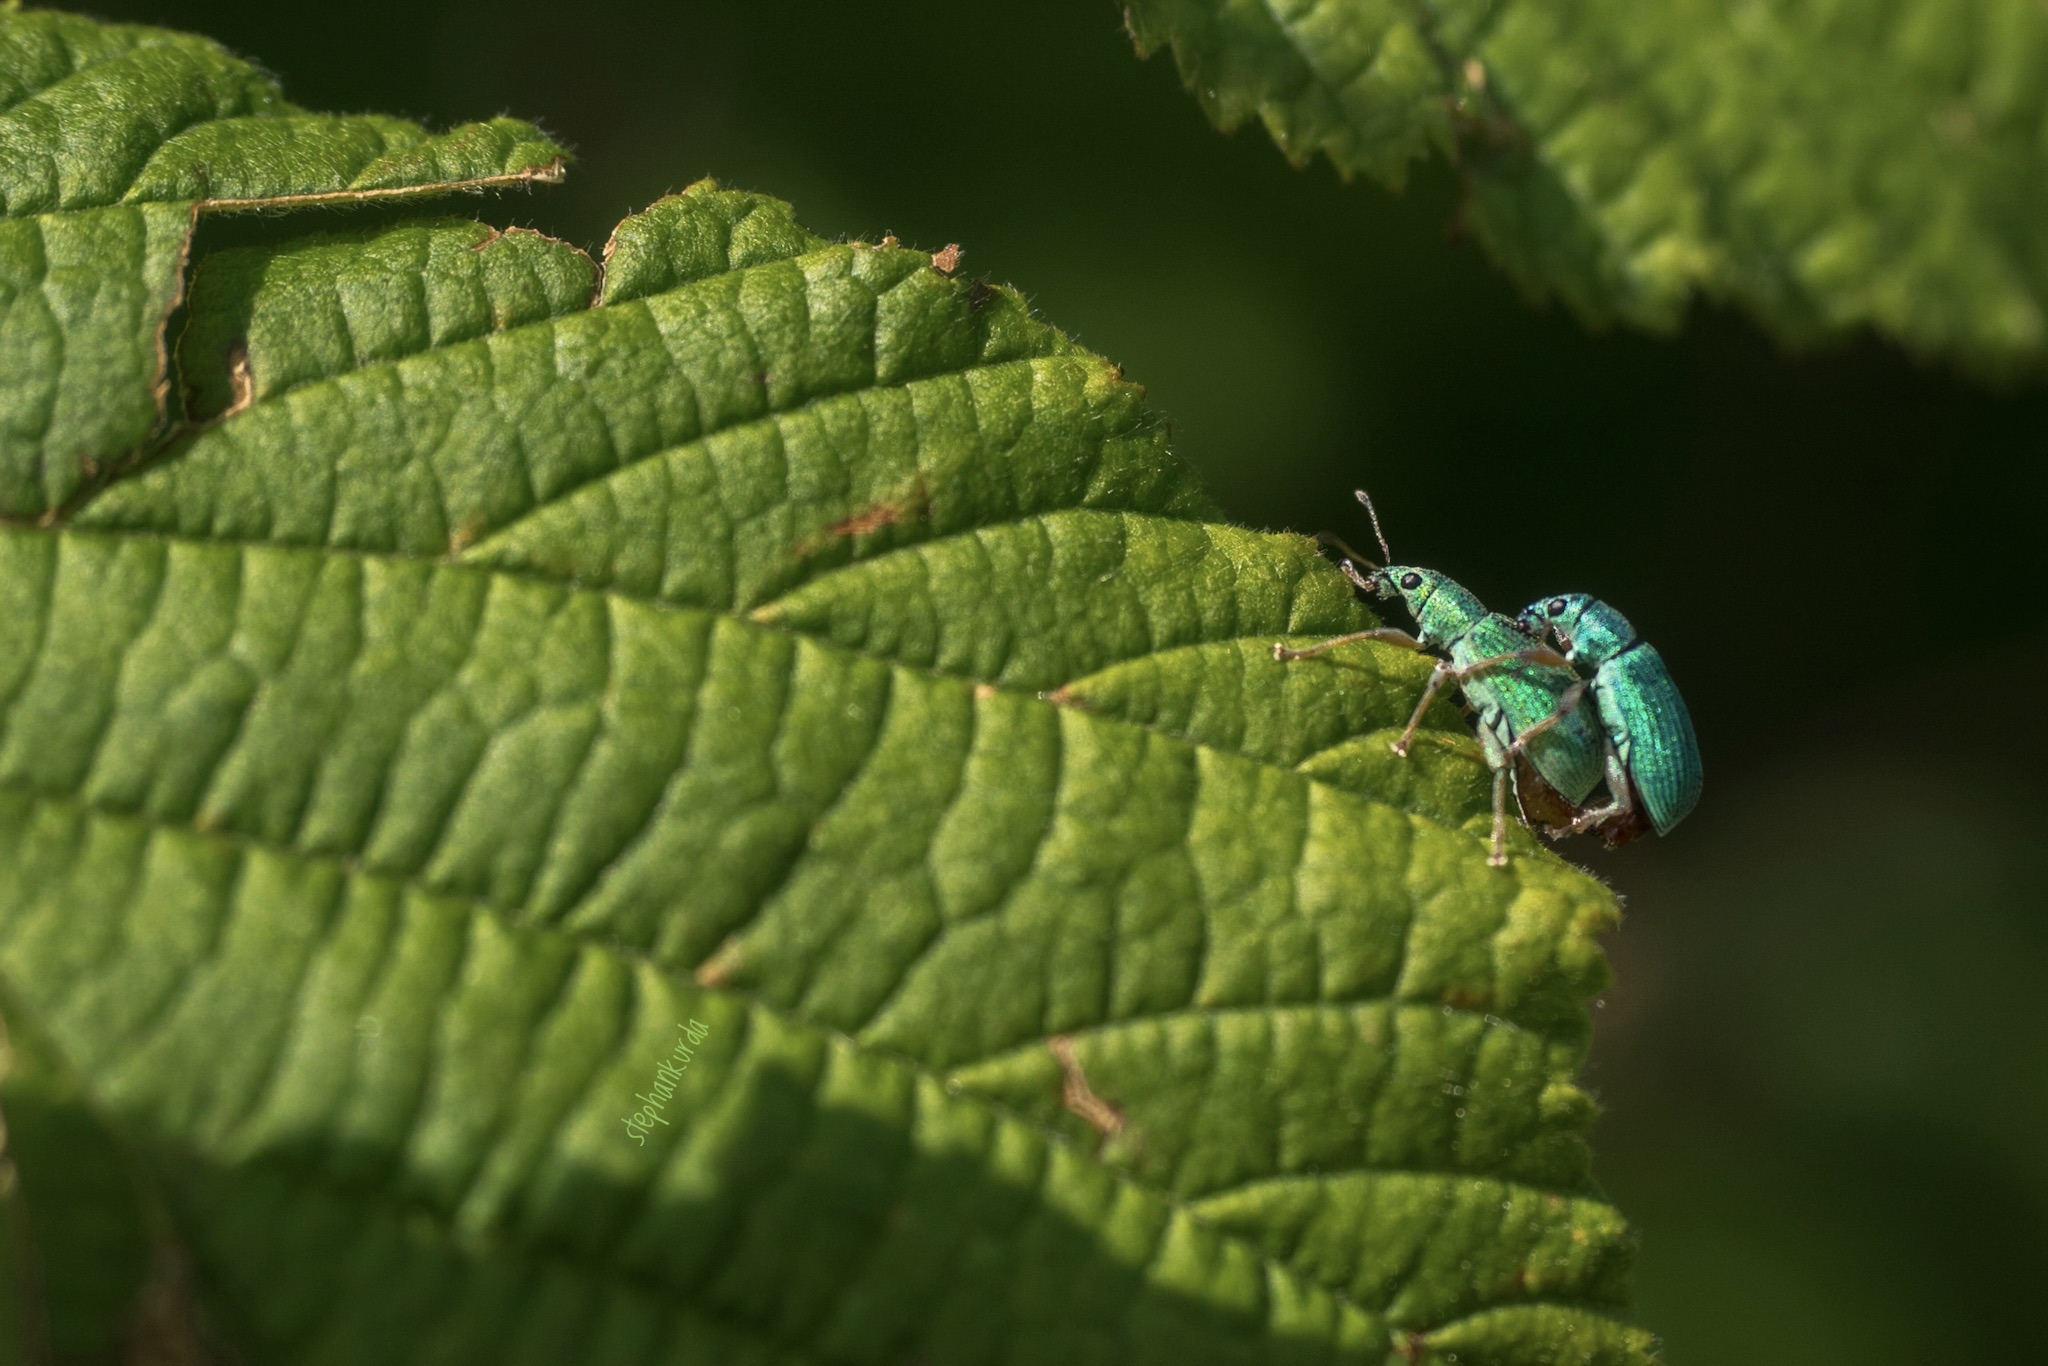 Weevils in action